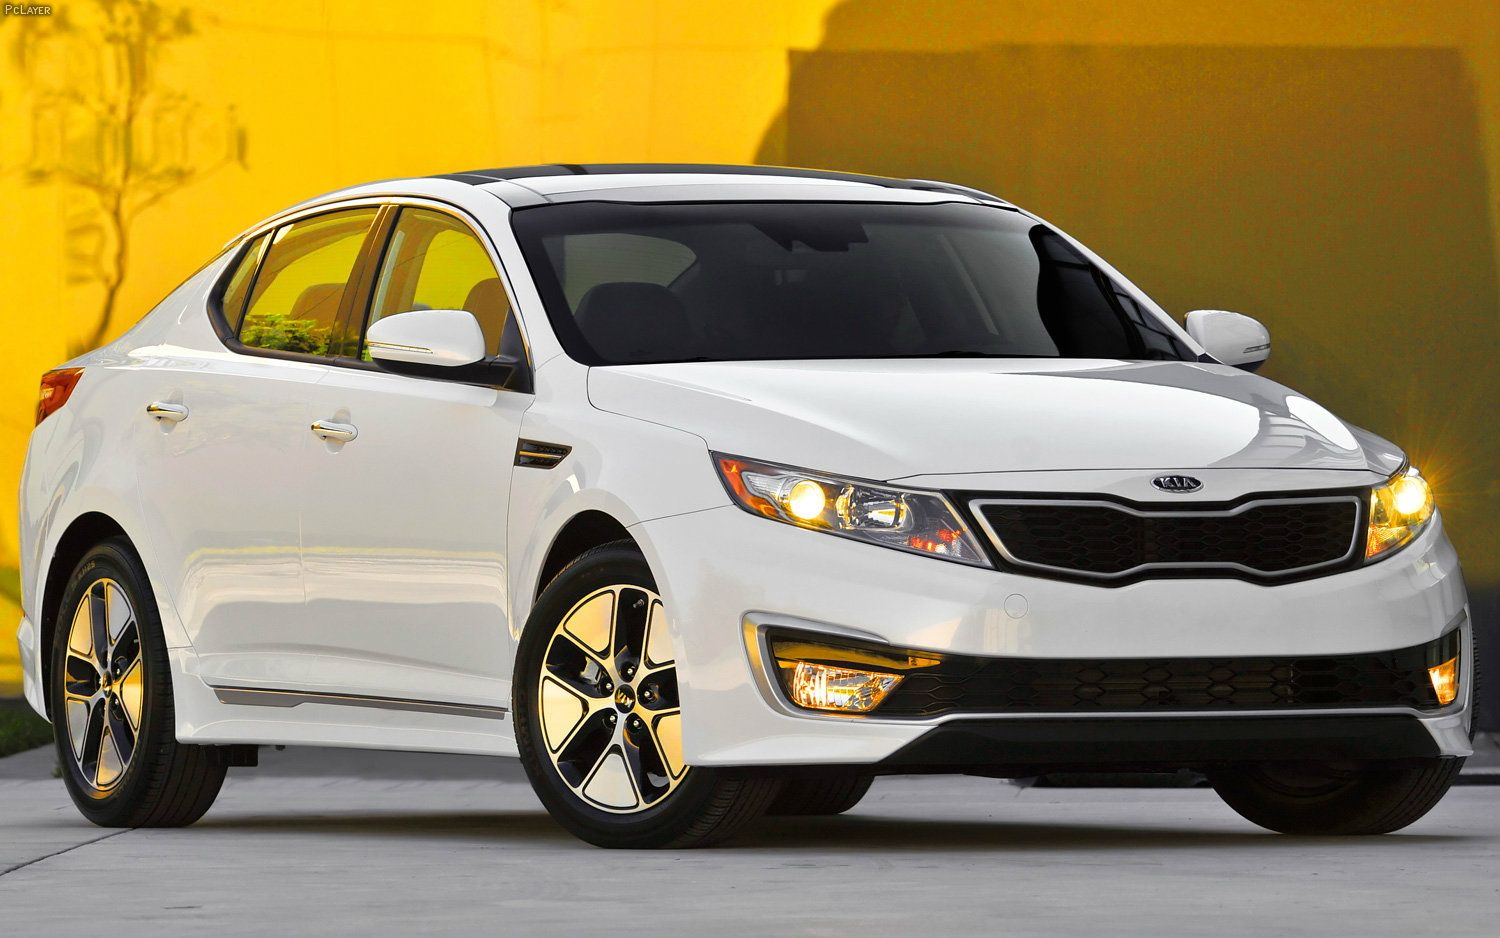 Cars Price Kia Cars Kia Optima Hybrid Car 2013 2014 Price In Pakistan